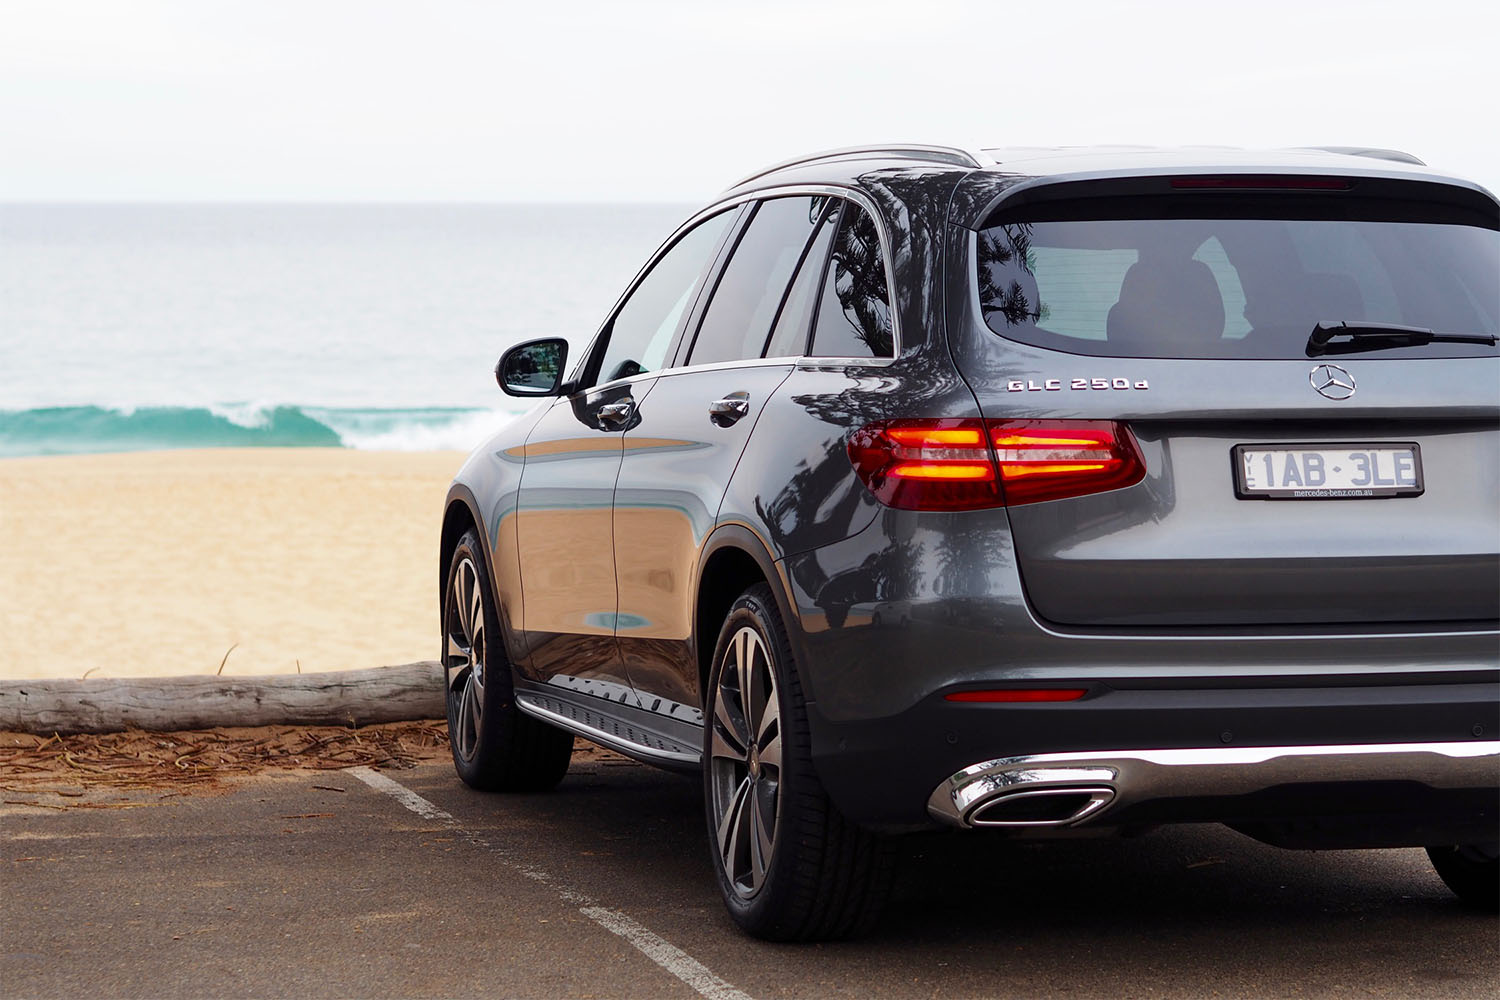 2016 mercedes benz glc 250d review hey gents for Mercedes benz glc review